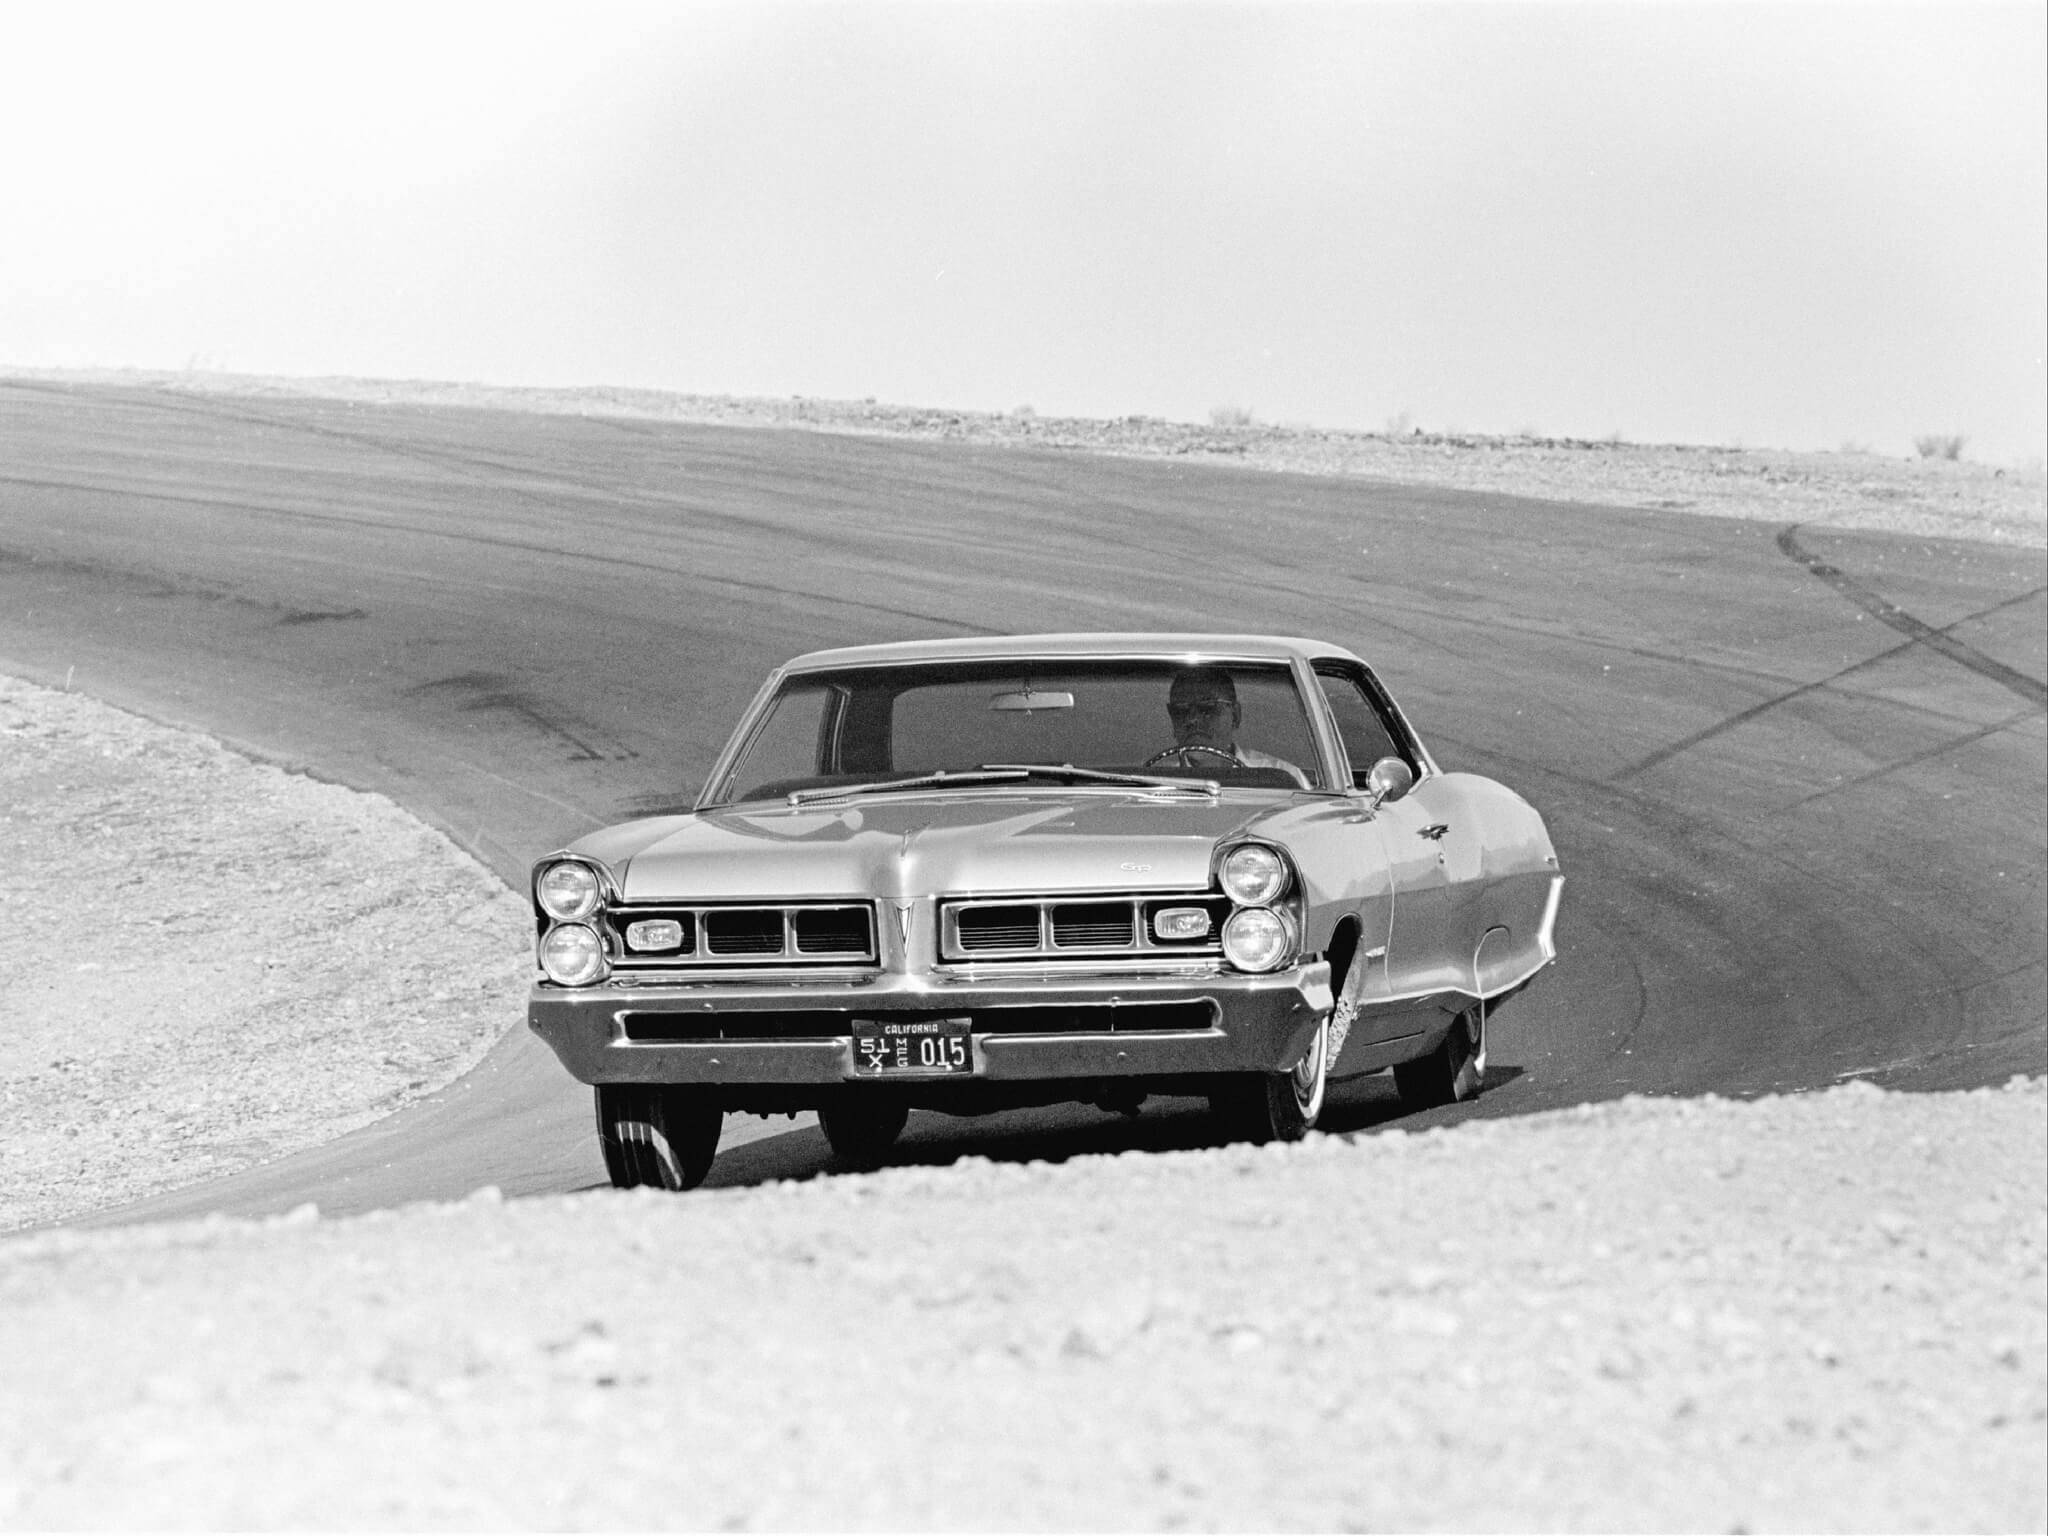 Buckle Up for This Quiz on the History of the Automobile